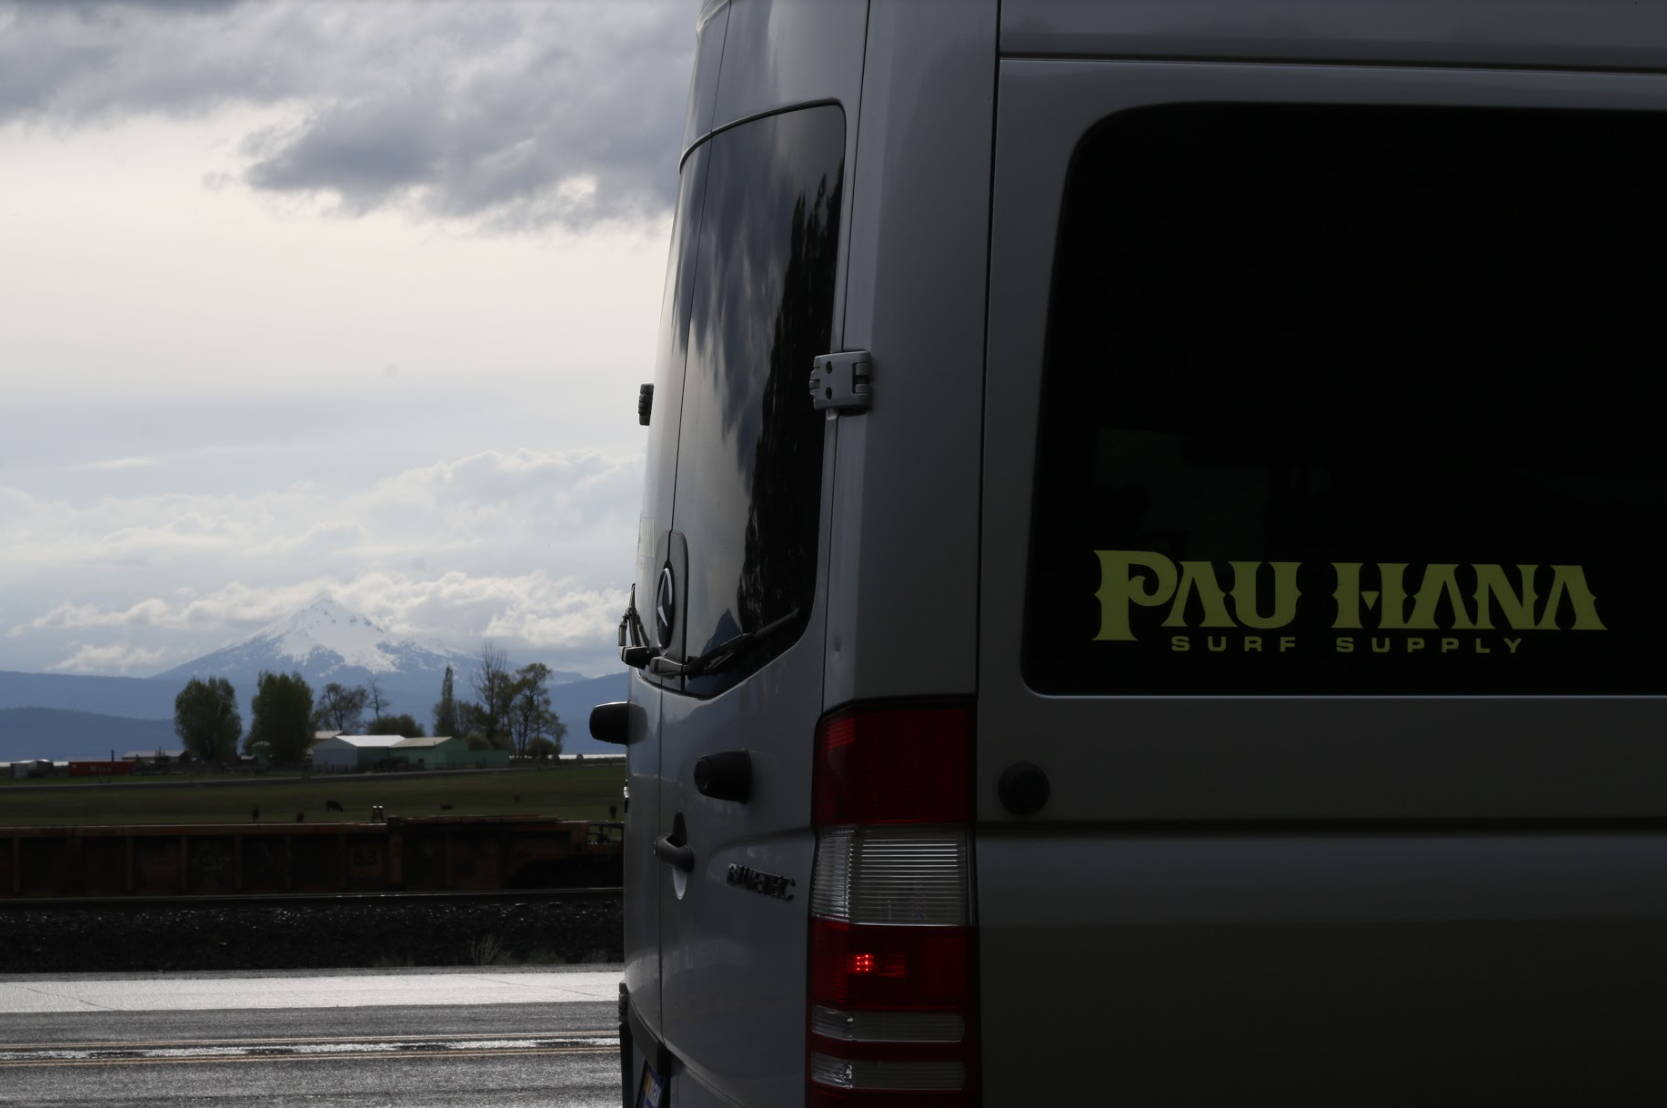 Pau Hana surf supply van with clouds in the background and neon sticker